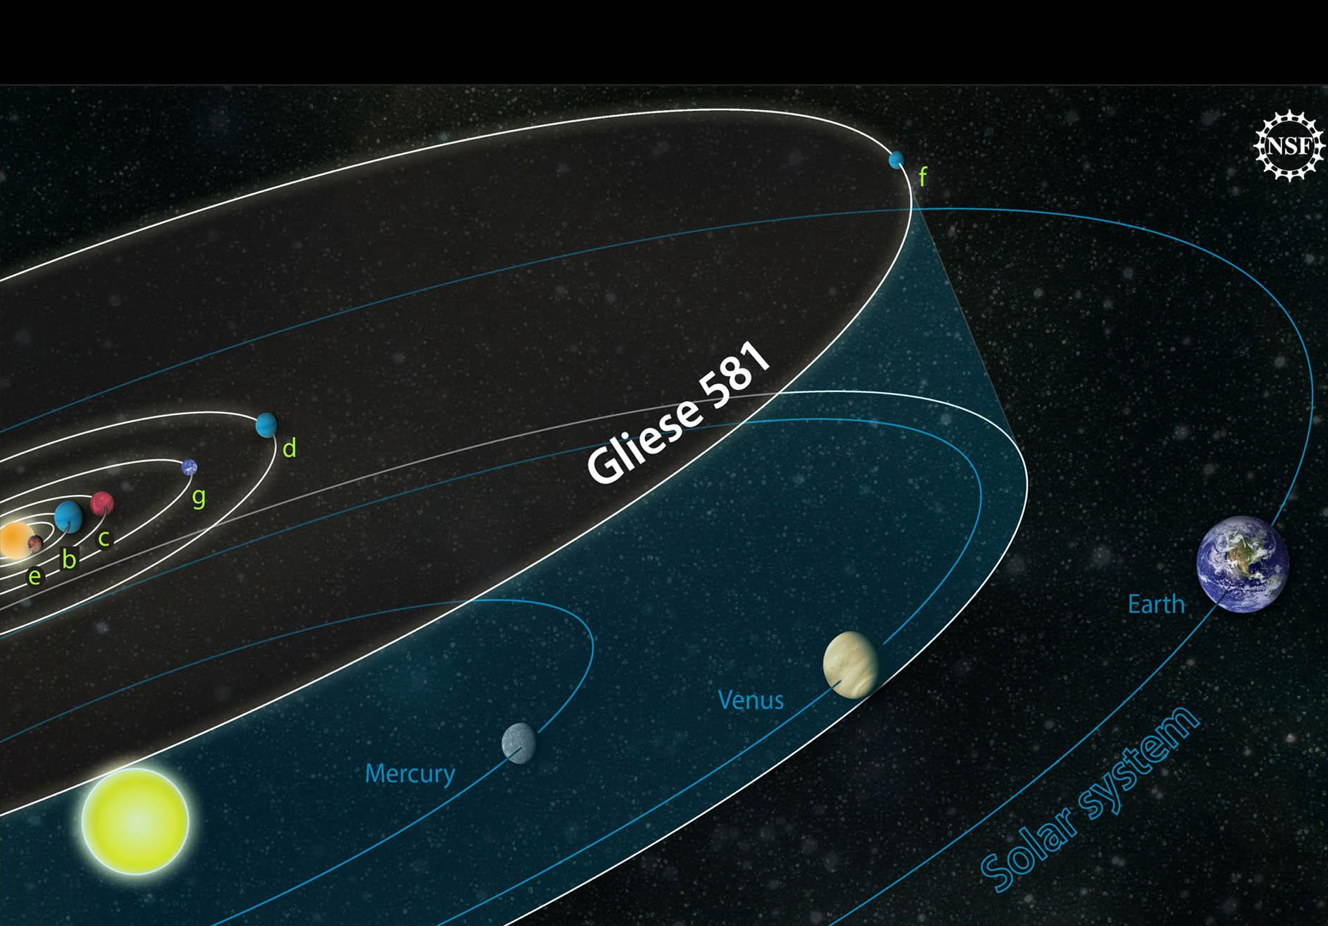 Gliese 581 compared with our solar system